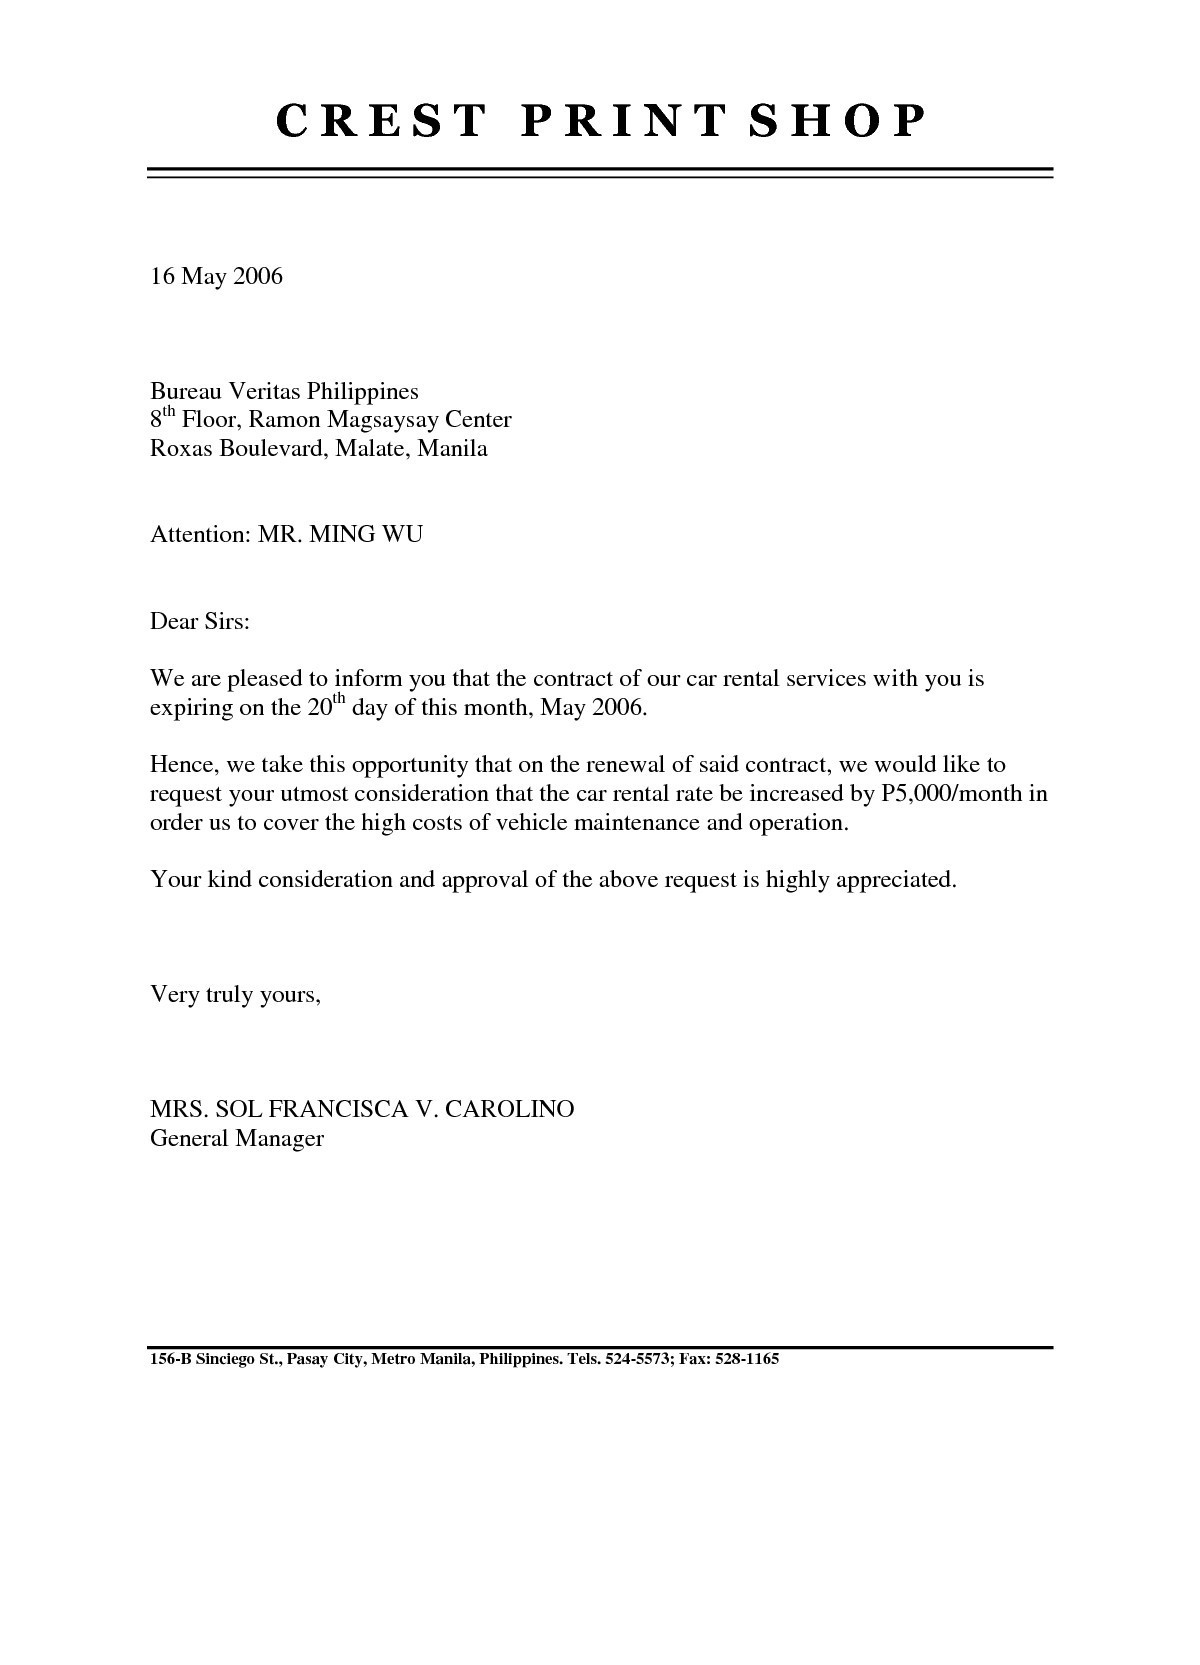 lease renewal letter template Collection-Lease Renewal Letter Template Tenancy Agreement Renewal Template Awesome Od Renewal Letter Sample 18-g